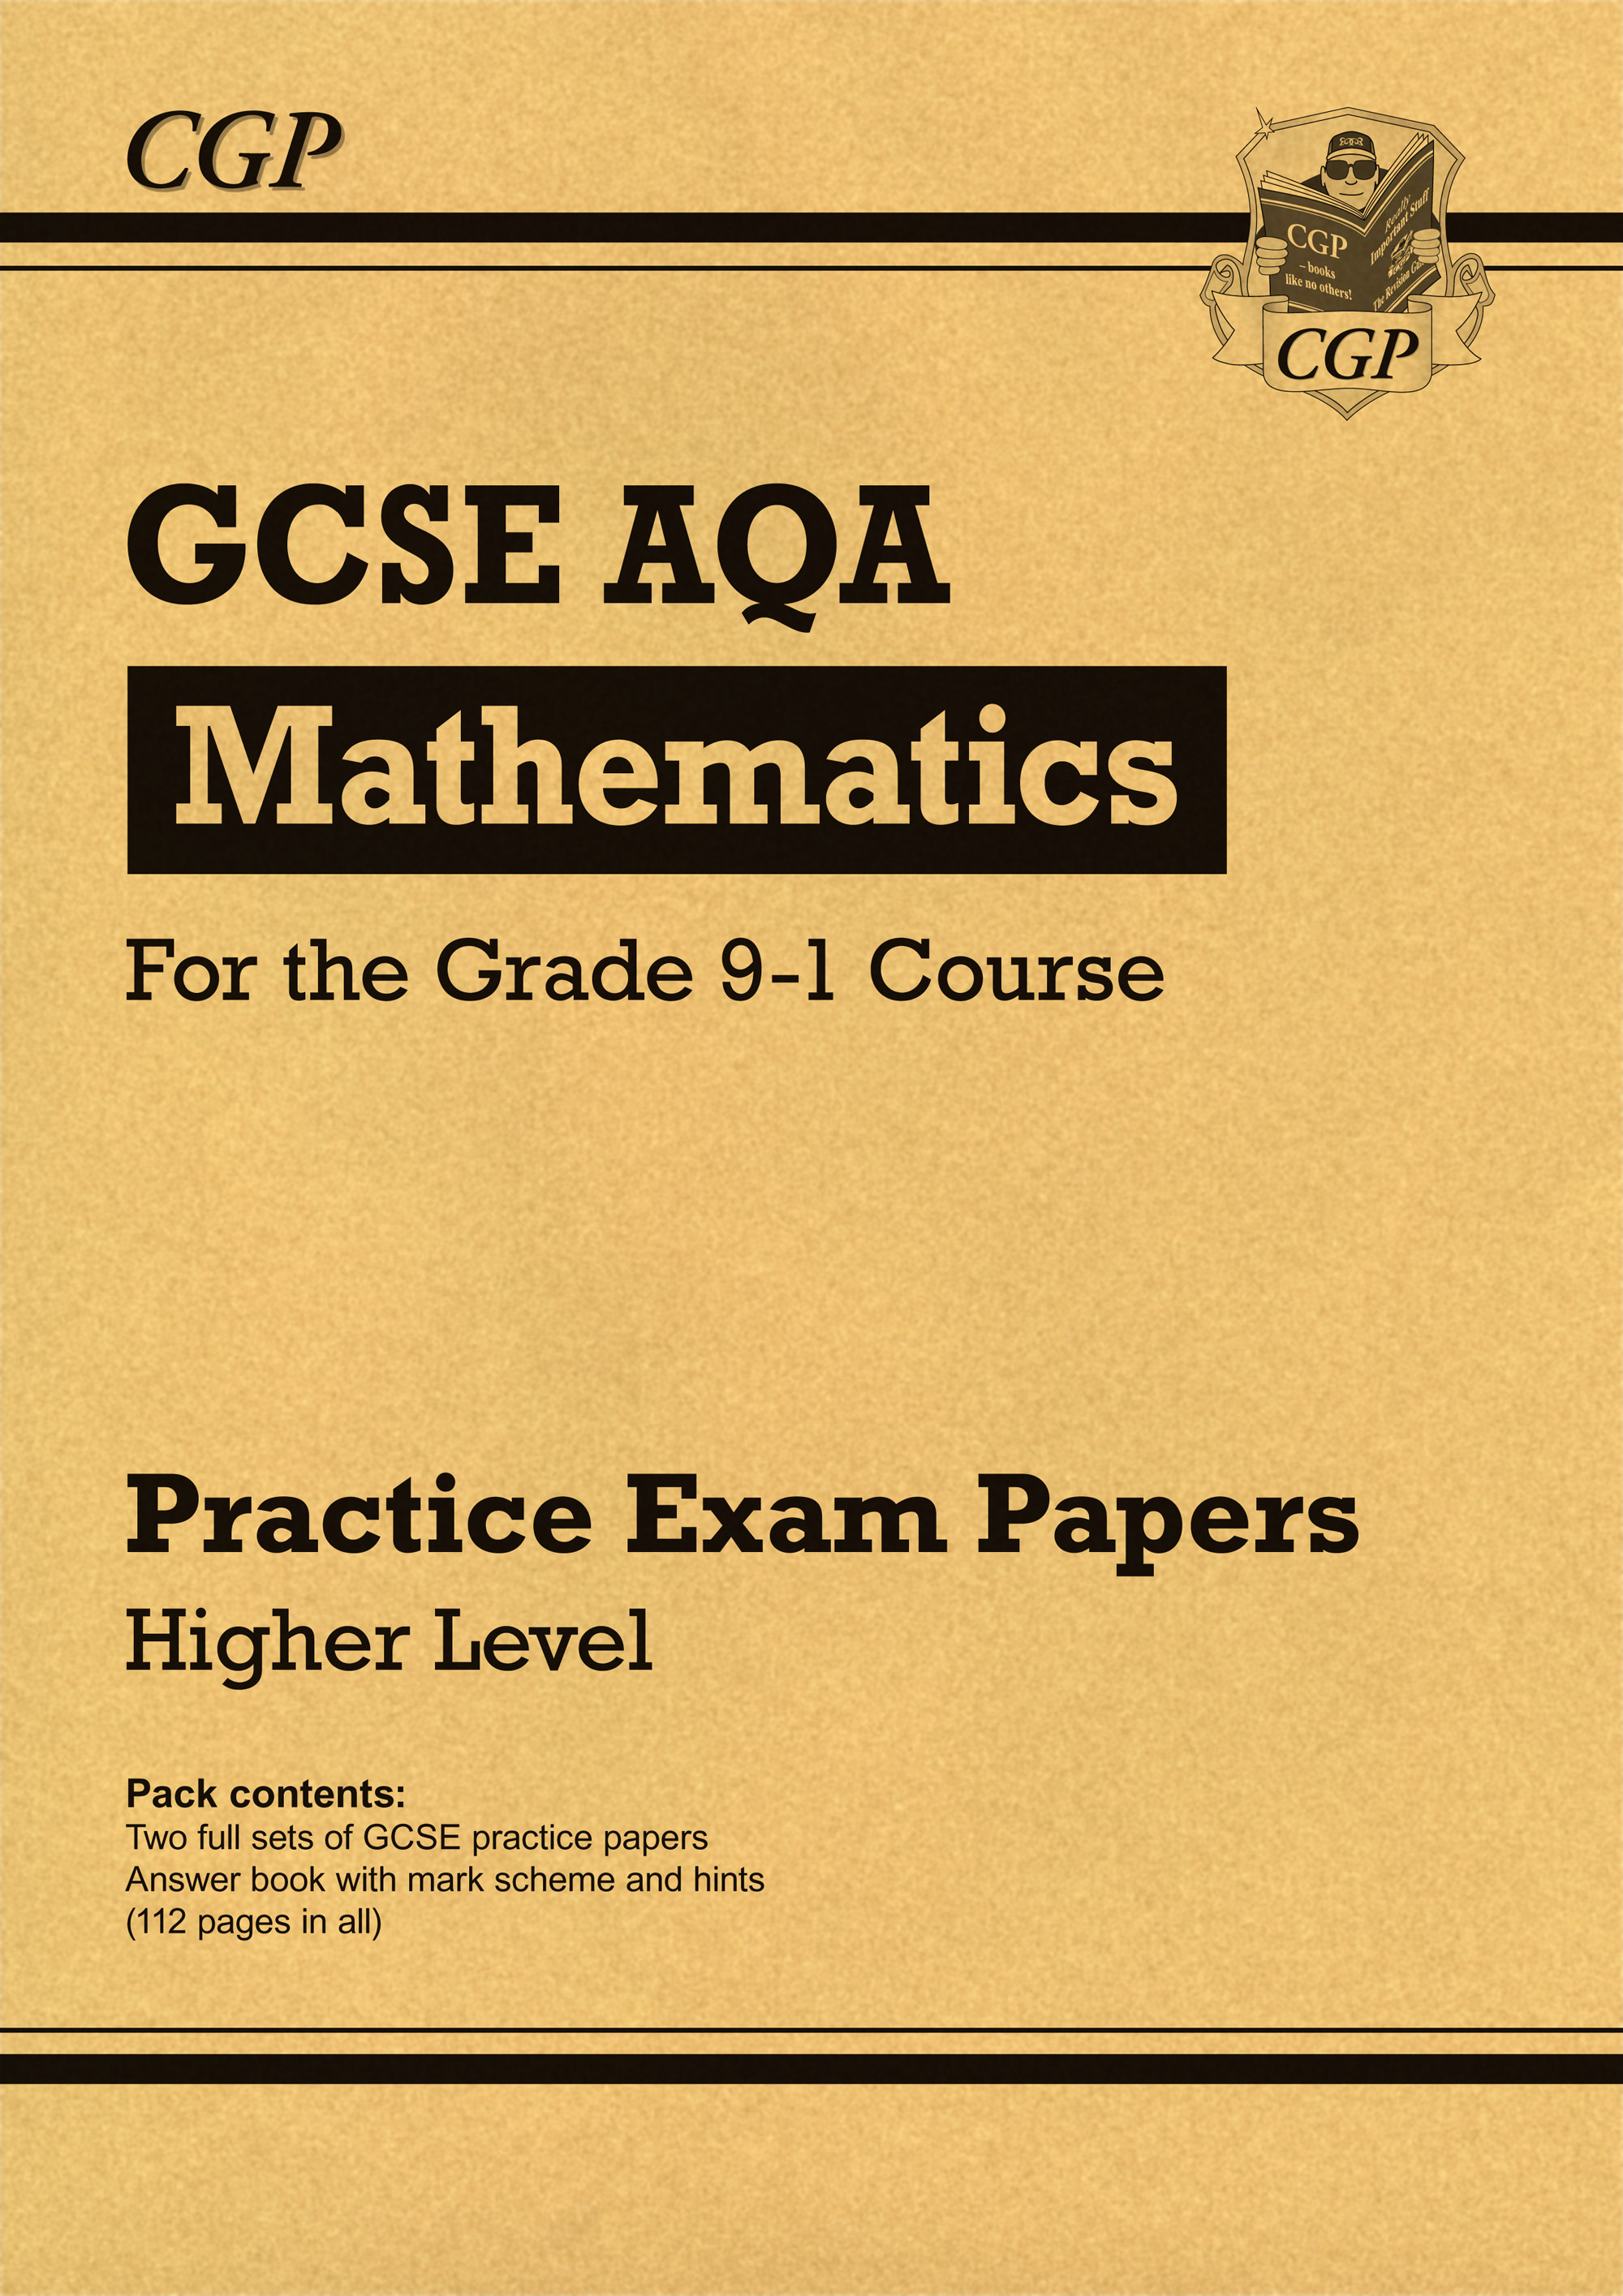 MQHP43 - New GCSE Maths AQA Practice Papers: Higher - for the Grade 9-1 Course